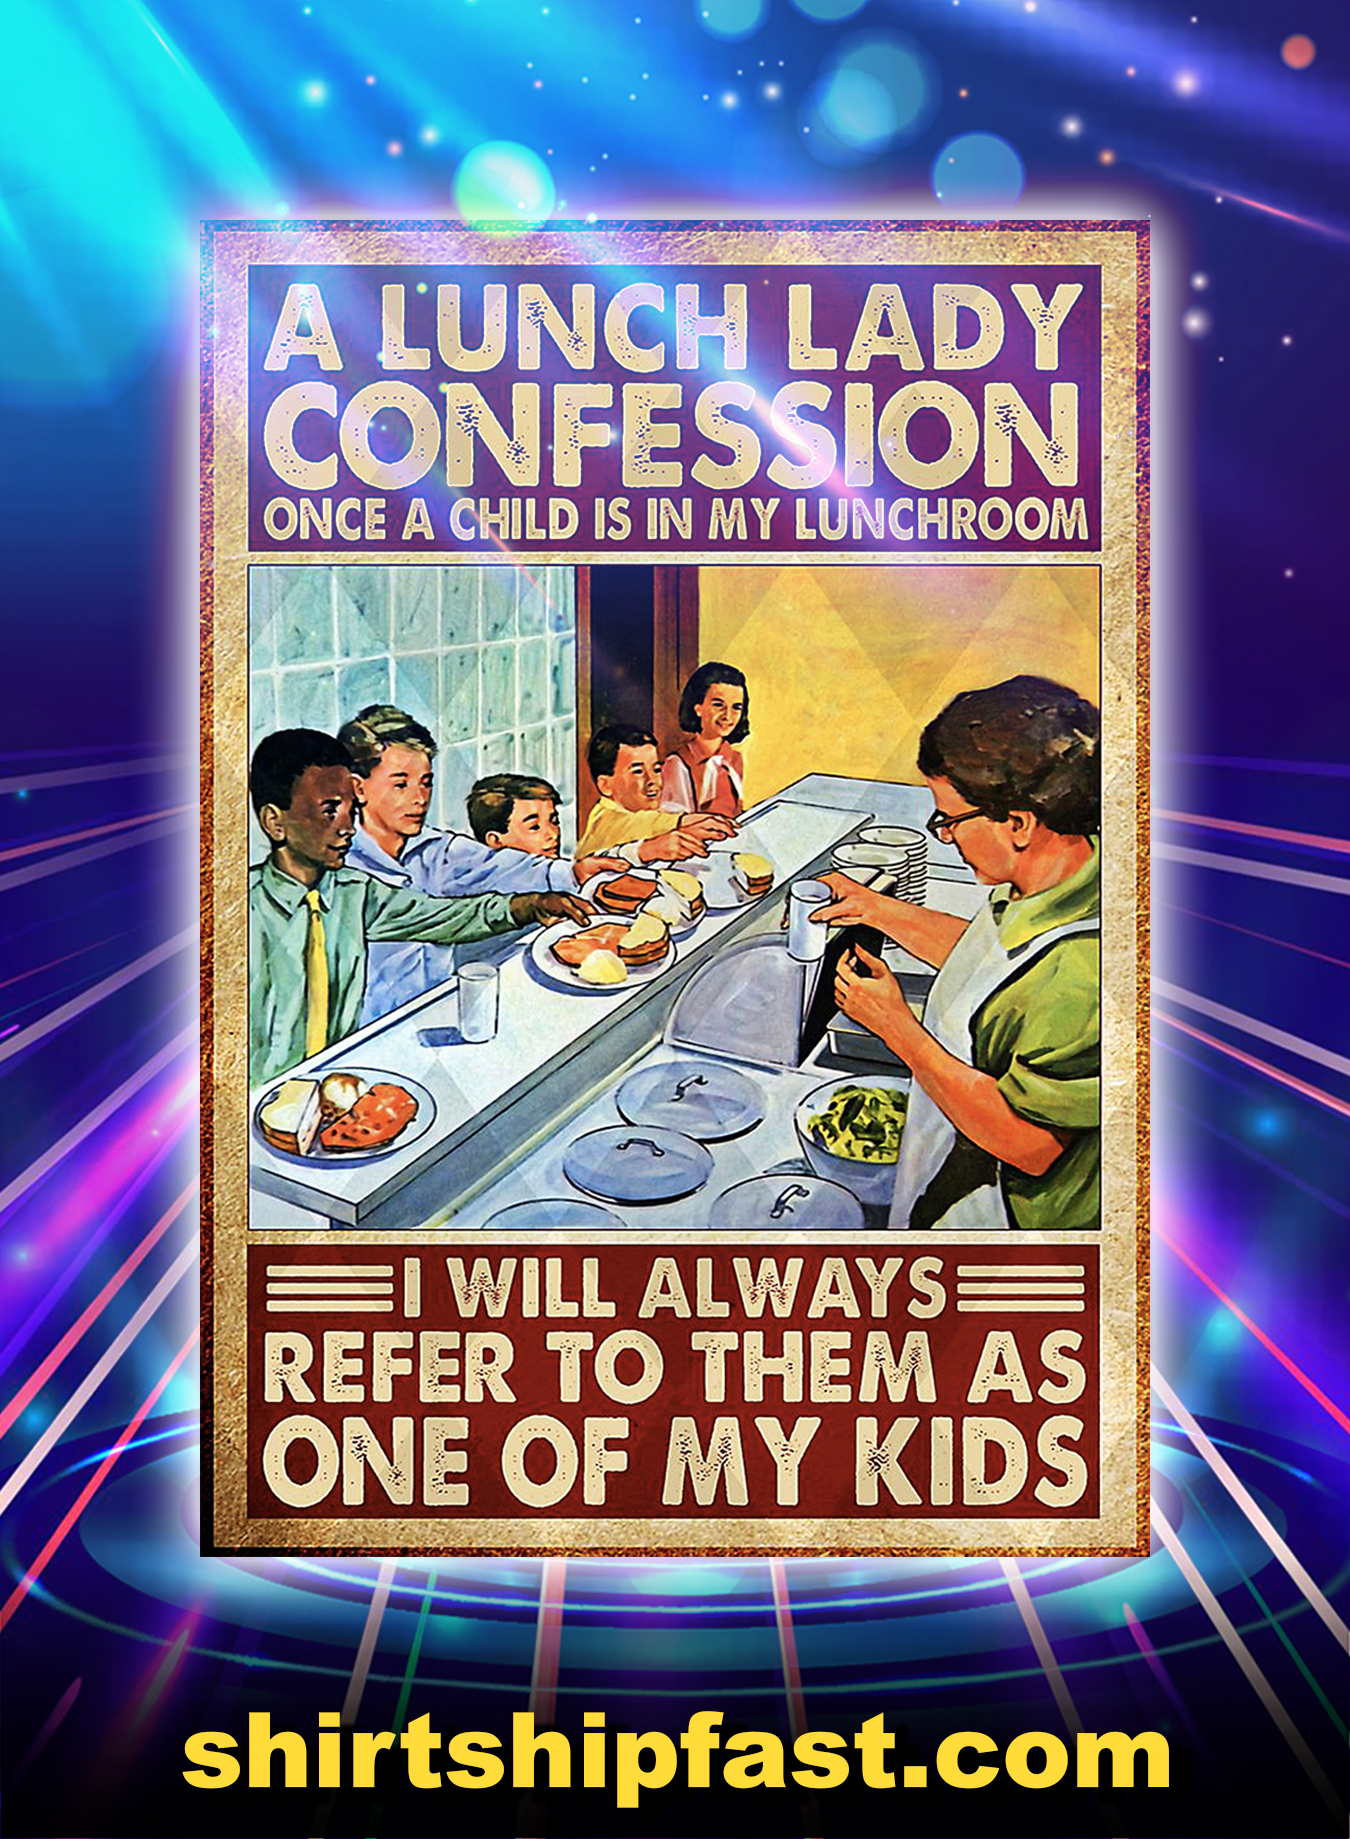 A lunch lady confession i will always refer to them as one of my kid poster - A2